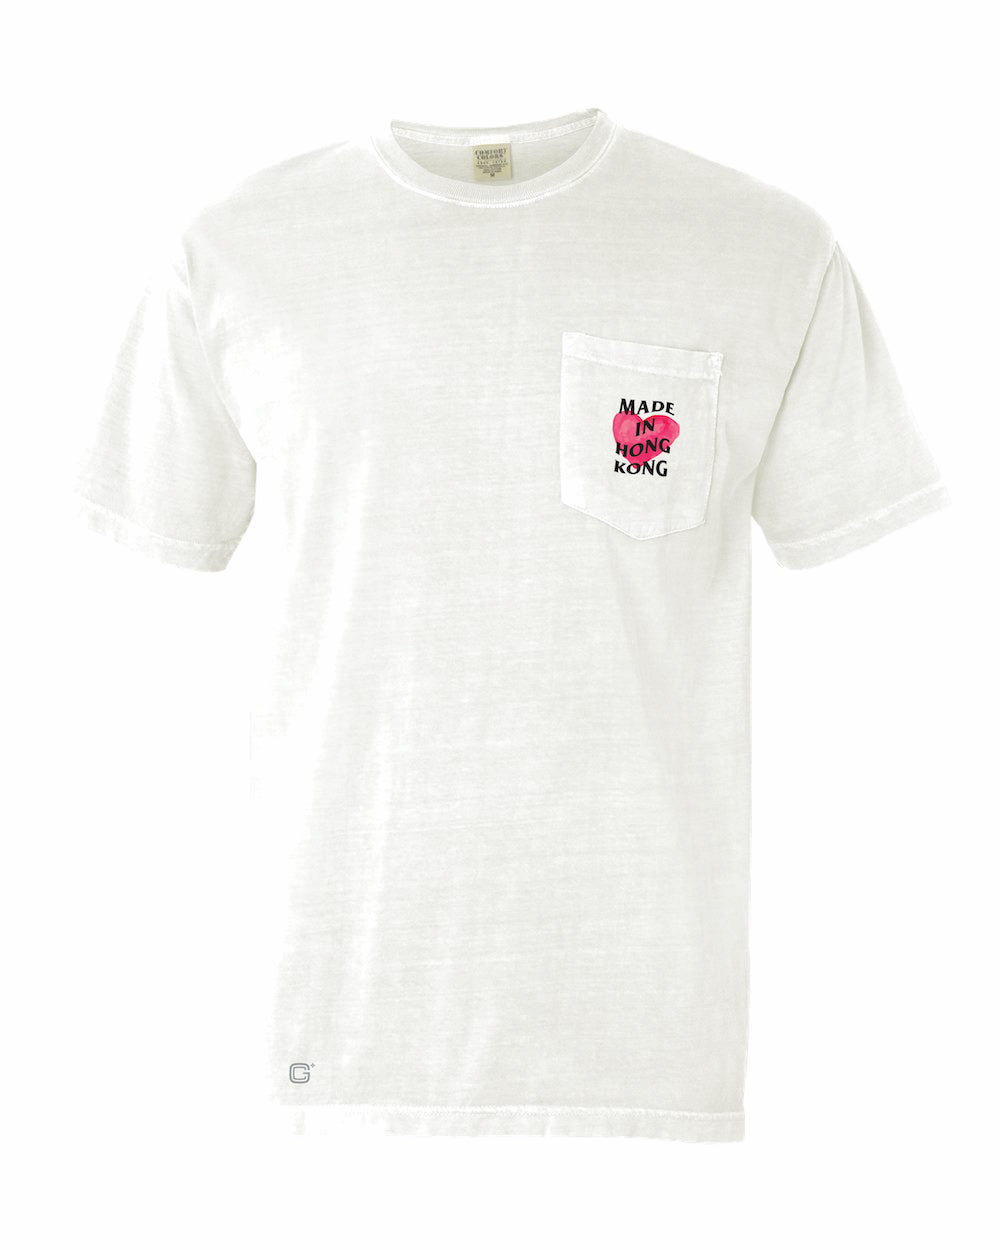 Made in Hong Kong Pocket Tee